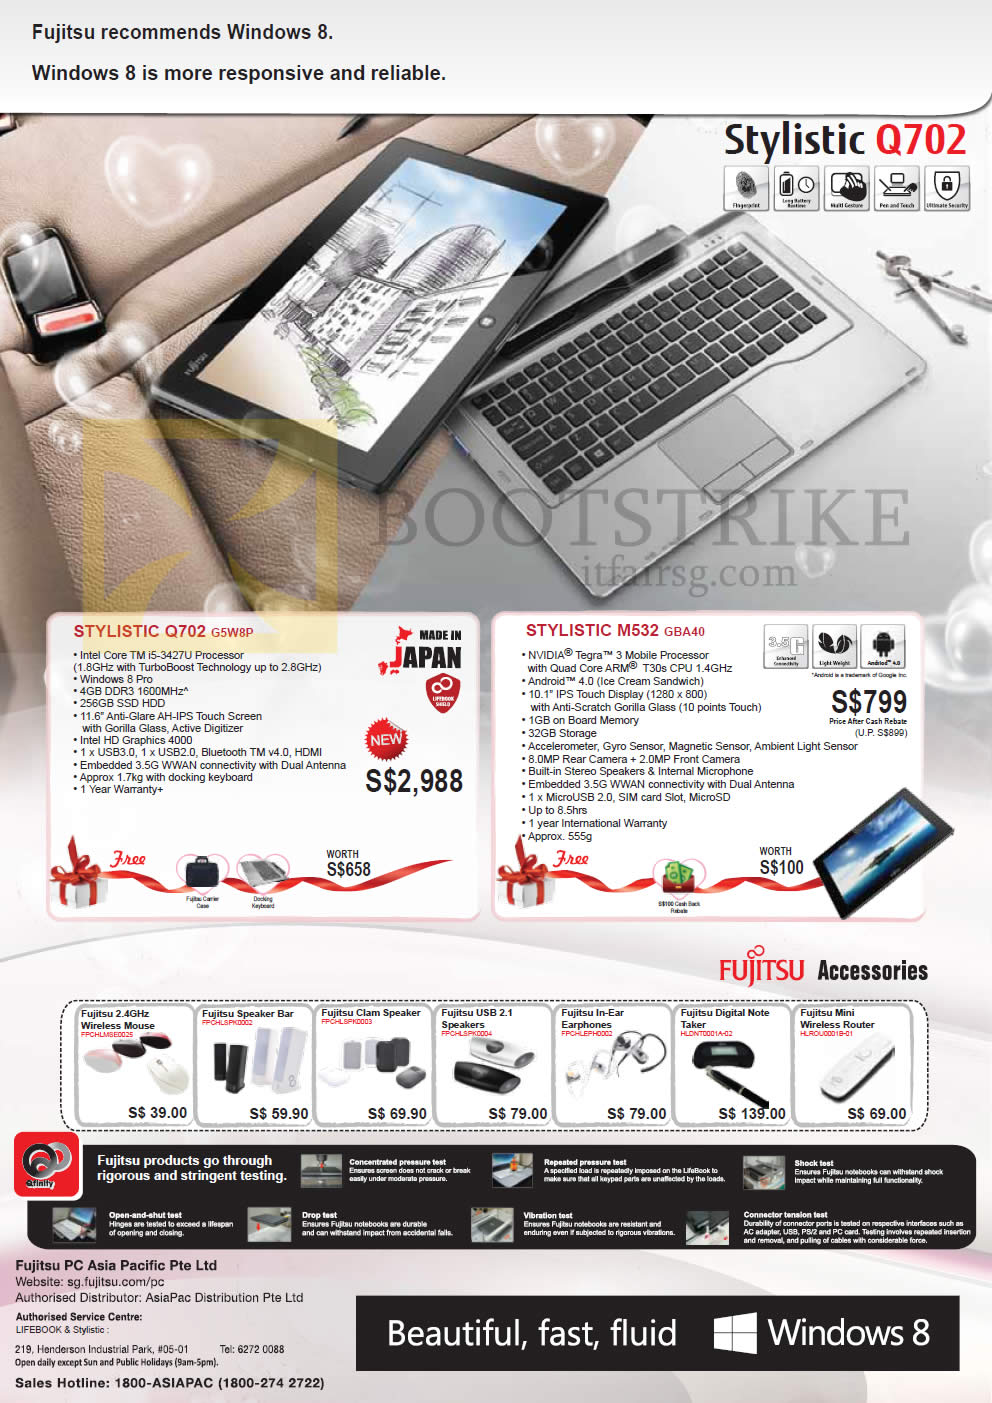 IT SHOW 2013 price list image brochure of Asiapac Fujitsu Tablets Stylistic Q702 G5W8P, M532 GBA40, Accessories